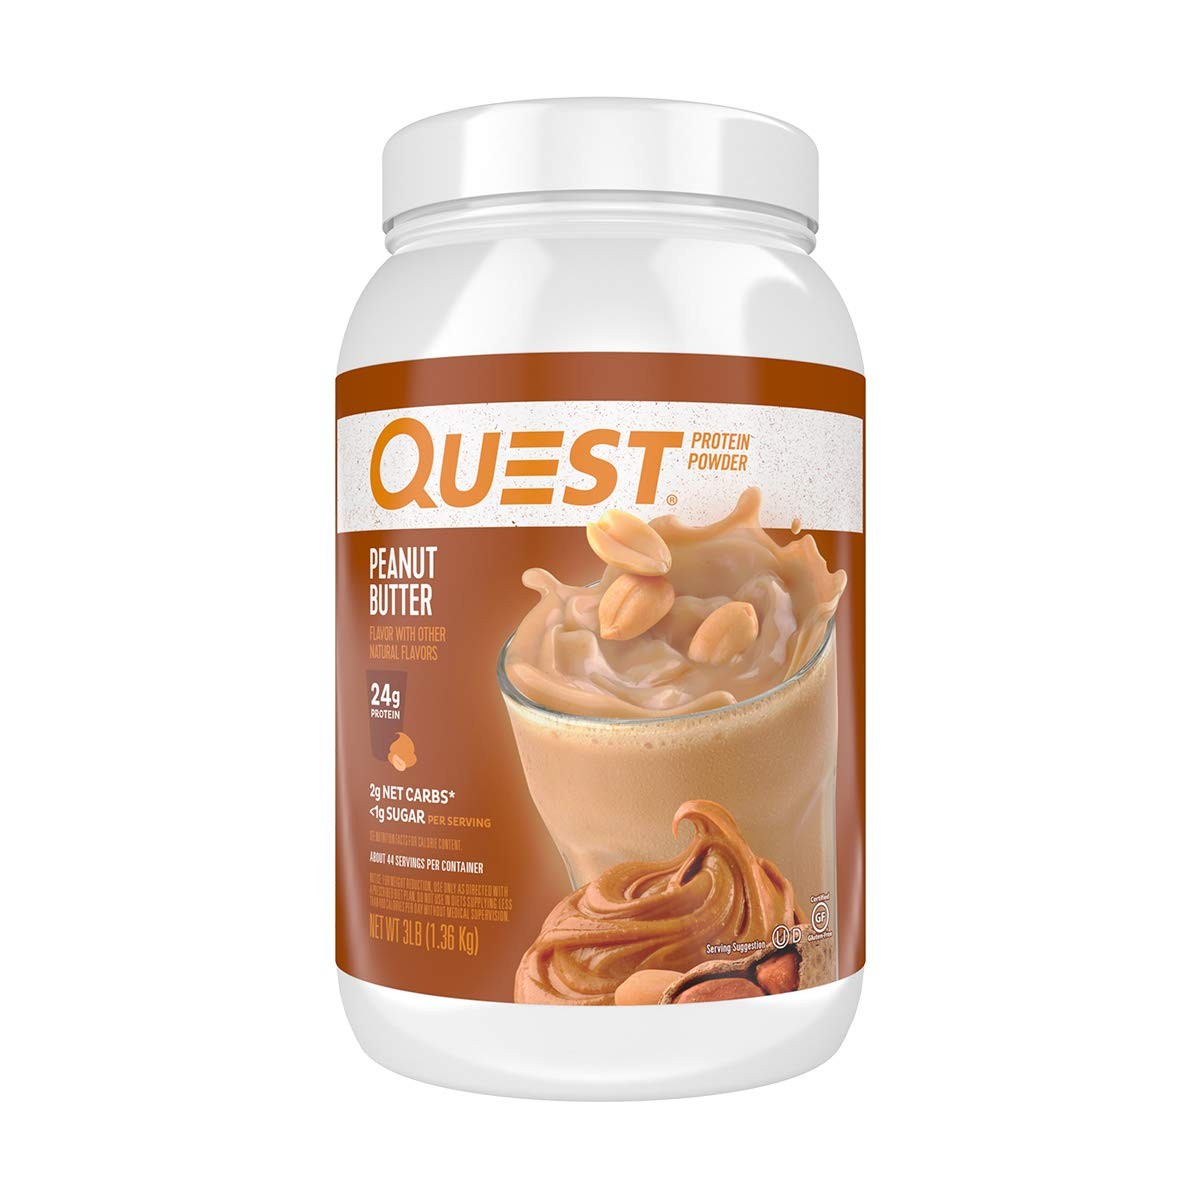 Quest Nutrition Peanut Butter Protein Powder, High Protein, Low Carb, Gluten Free, Soy Free, 3 Pound by Quest Nutrition